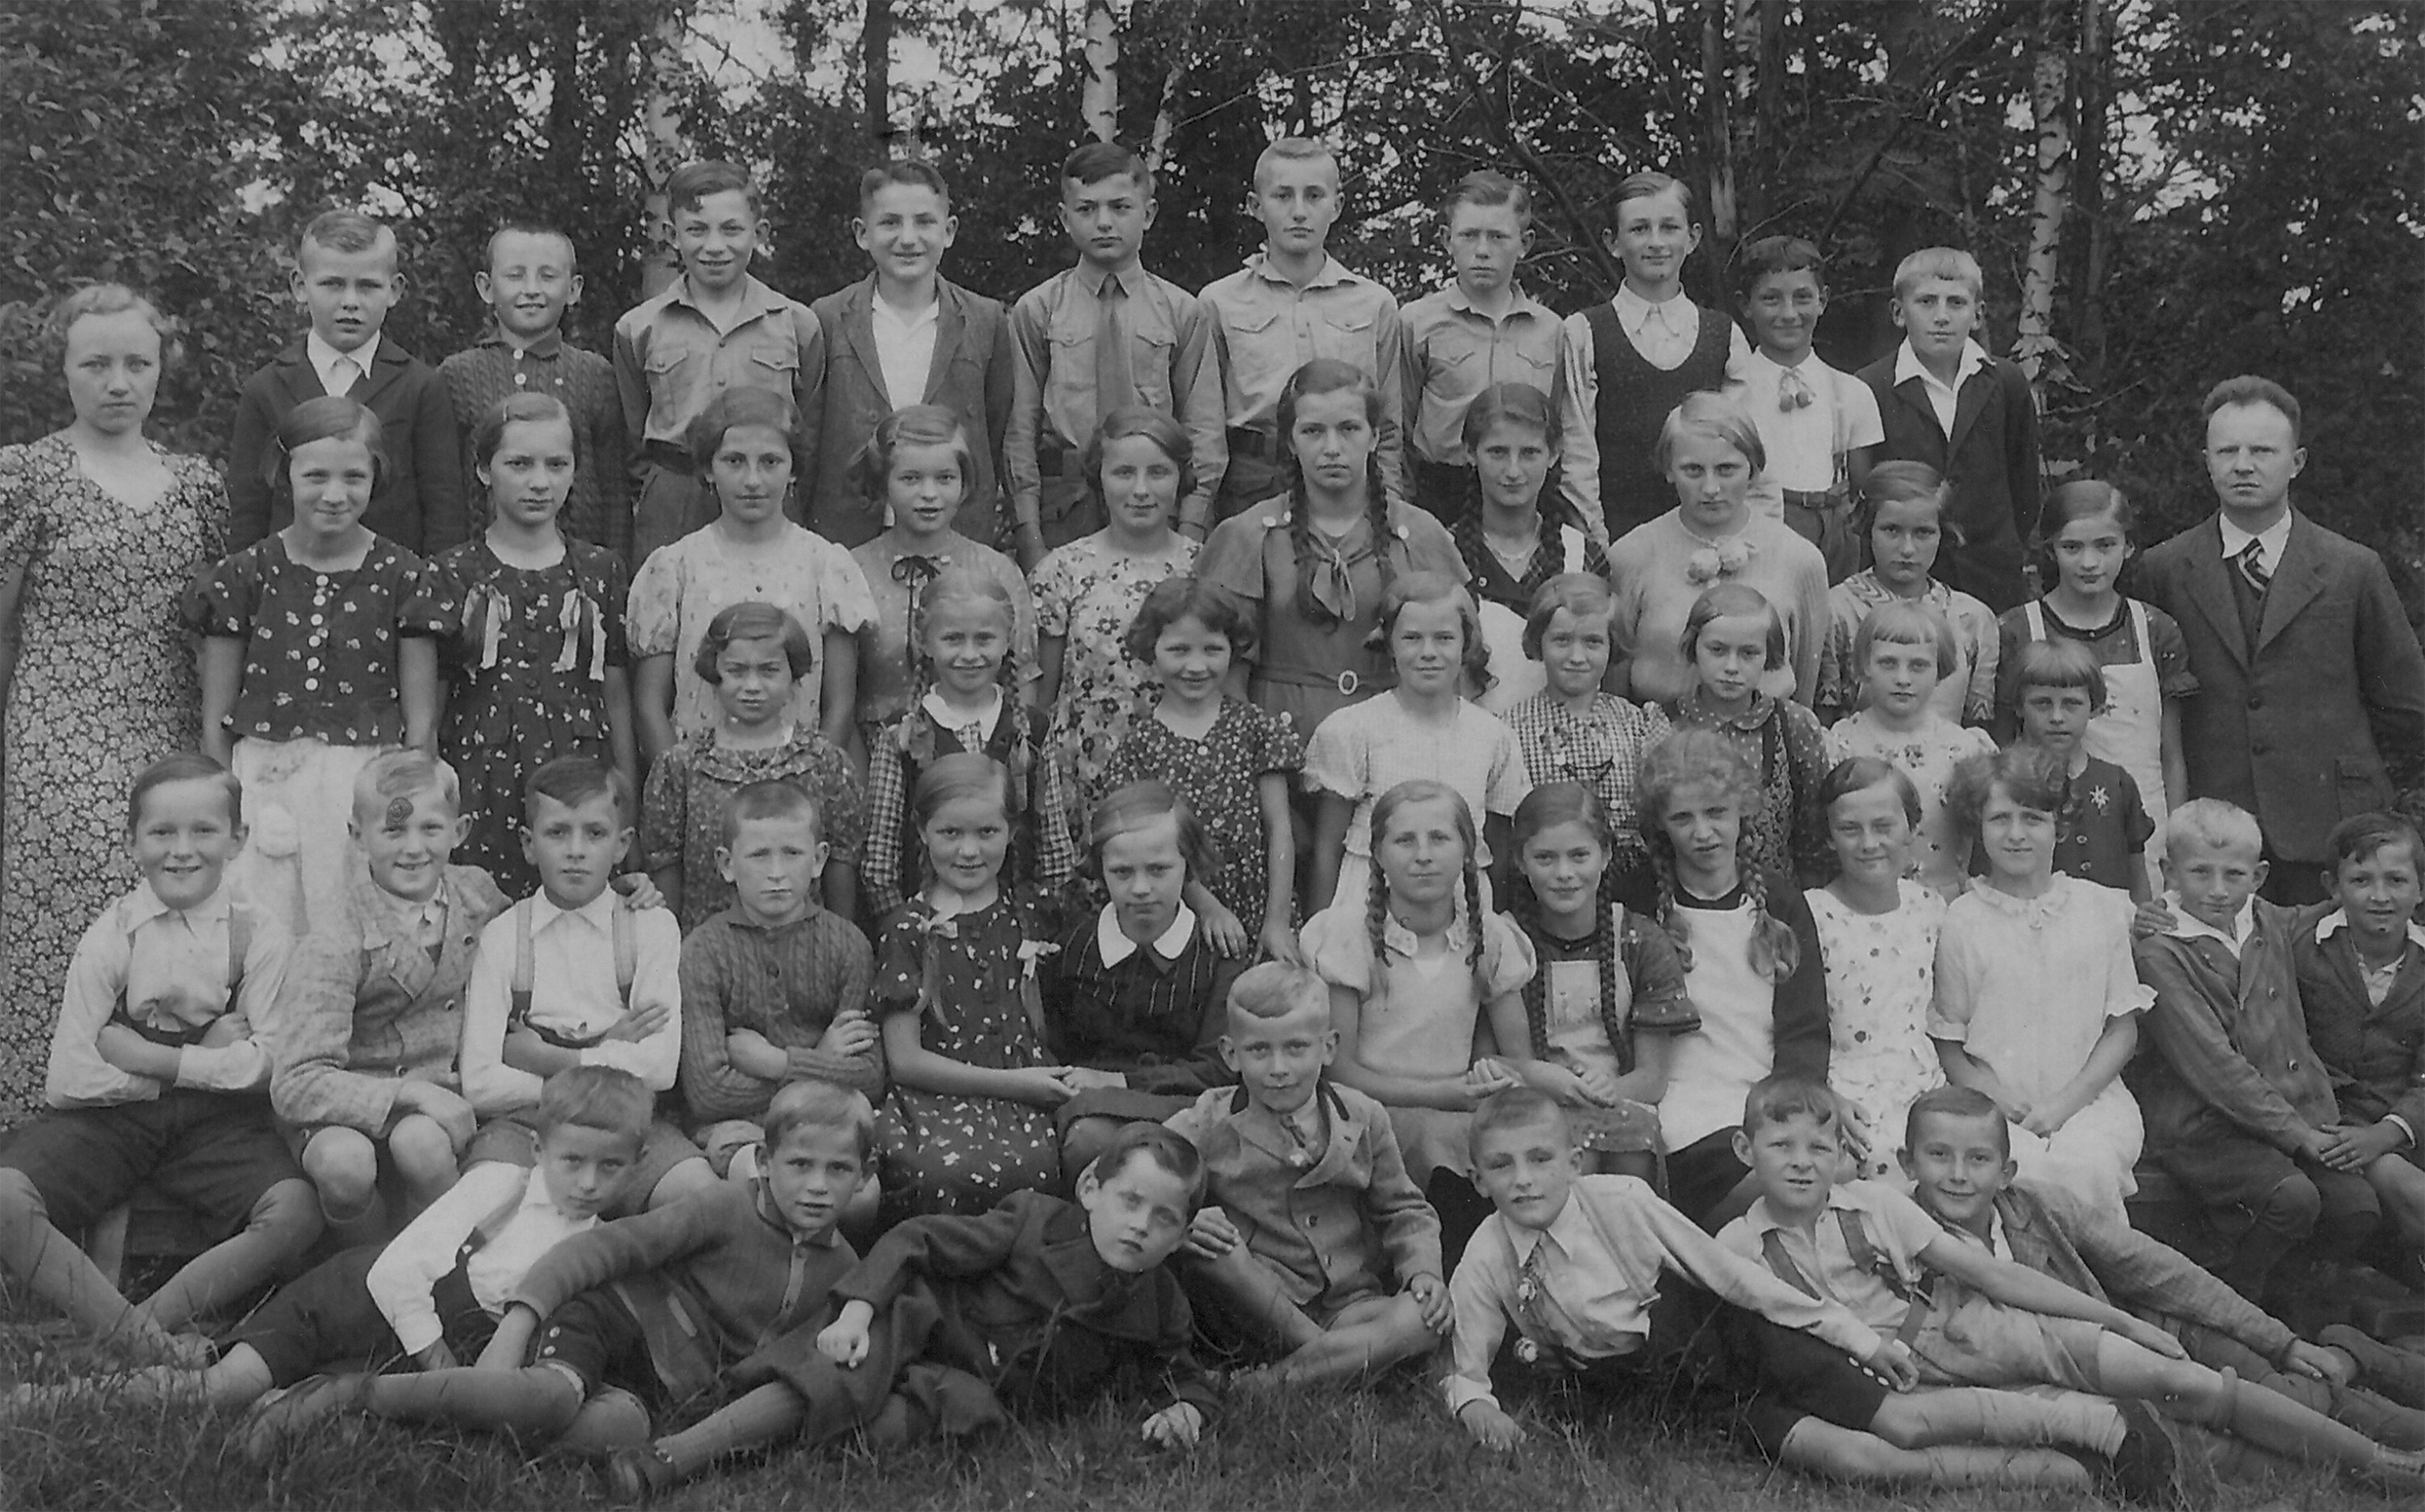 School photograph in Wunschendorf